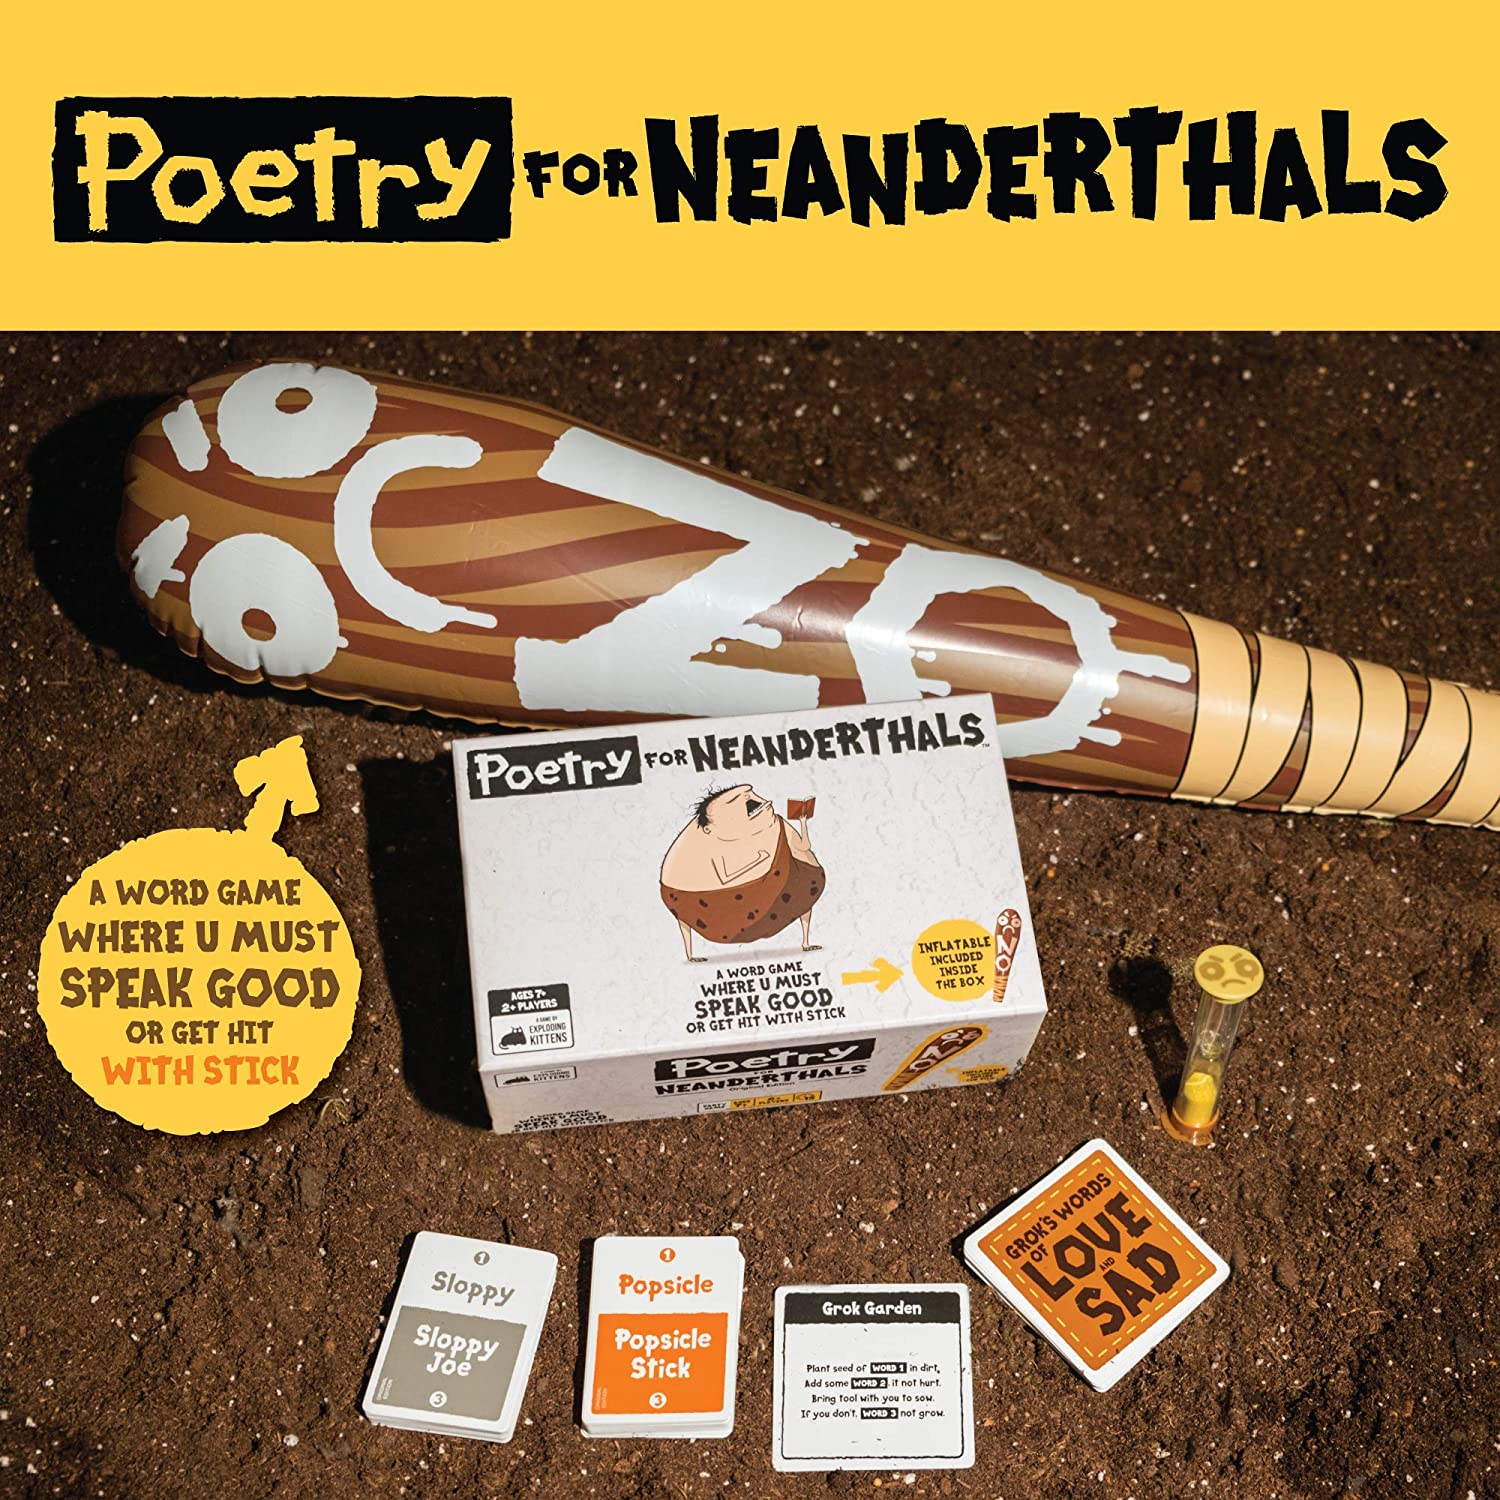 Poetry for Neanderthals by Exploding Kittens Card Games for Adults Teens /& Kids Original Edition